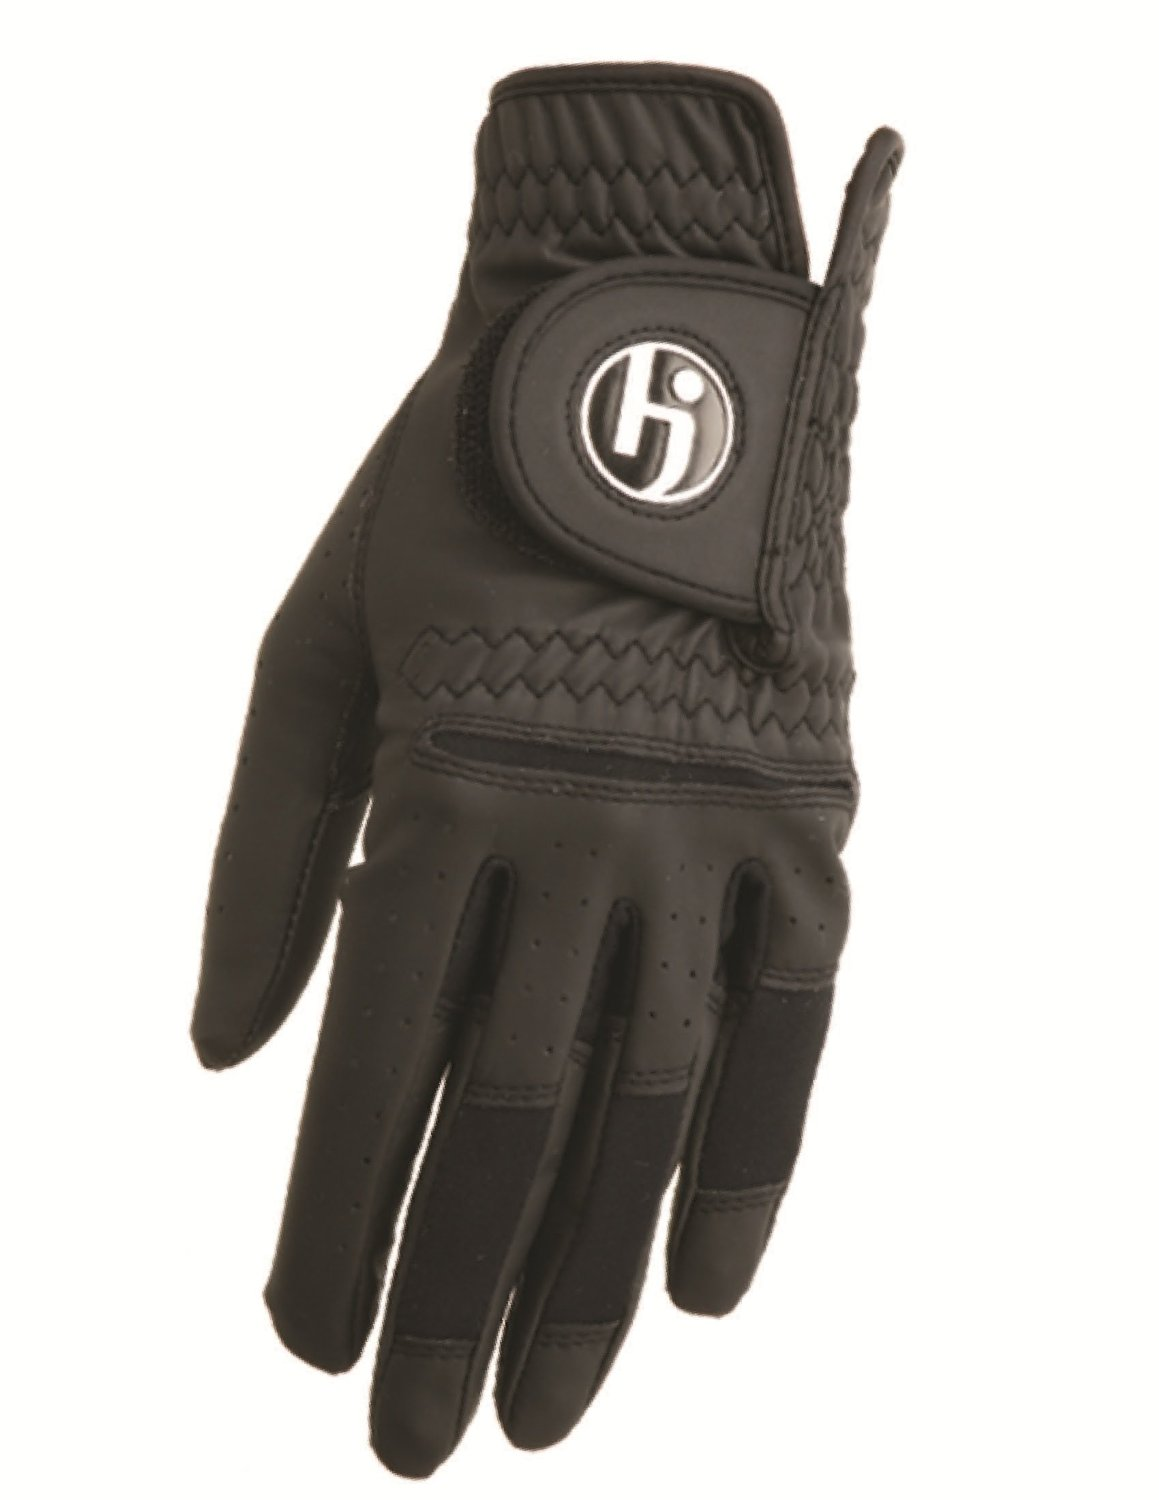 HJ Glove Womens Golf Gloves